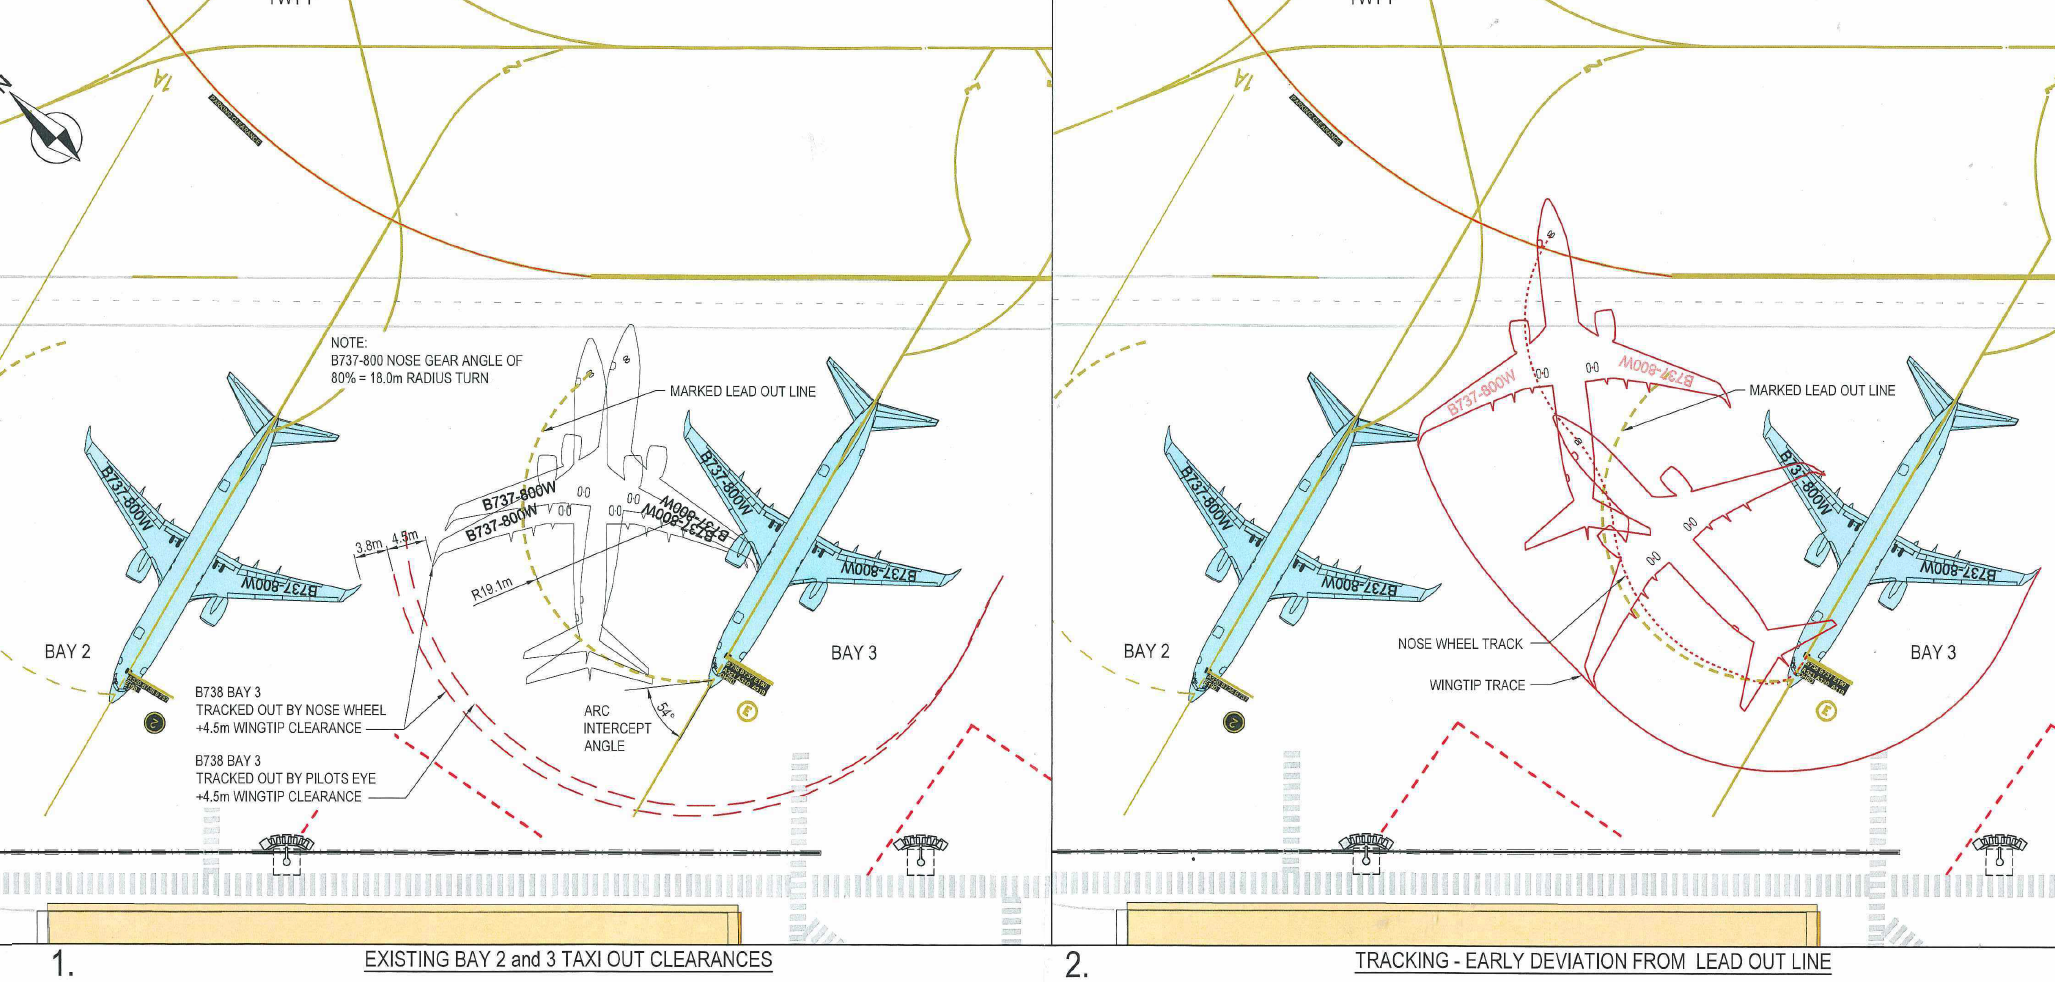 Figure 10: Airport survey markings showing B737 aircraft taxi track with nose wheel on lead-out line (left) and approximate incident taxi path (right)